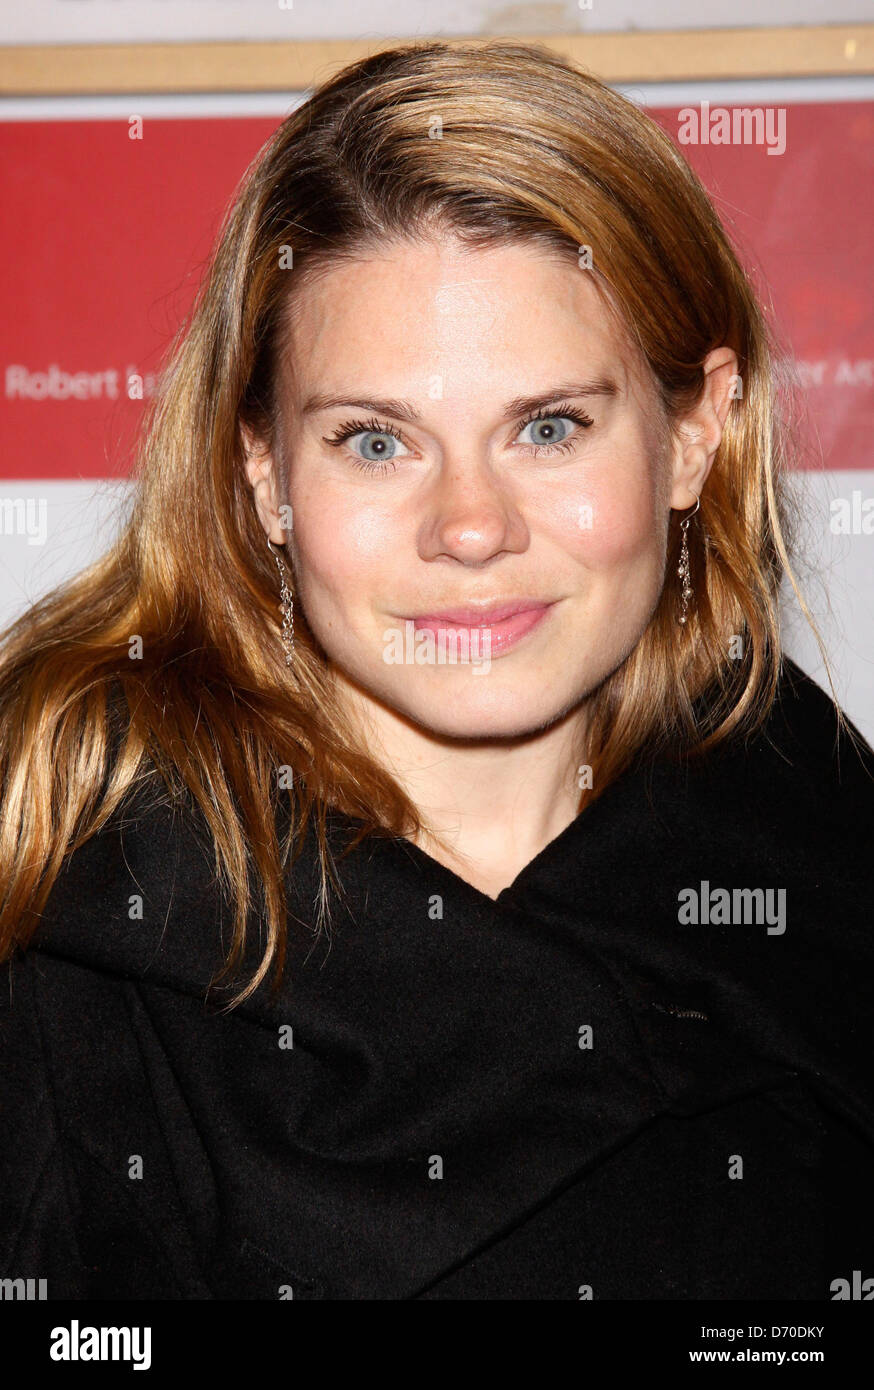 Celia Keenan-Bolger Opening night of the MCC production of the musical 'Carrie' at the Lucille Lortel Theatre - Stock Image